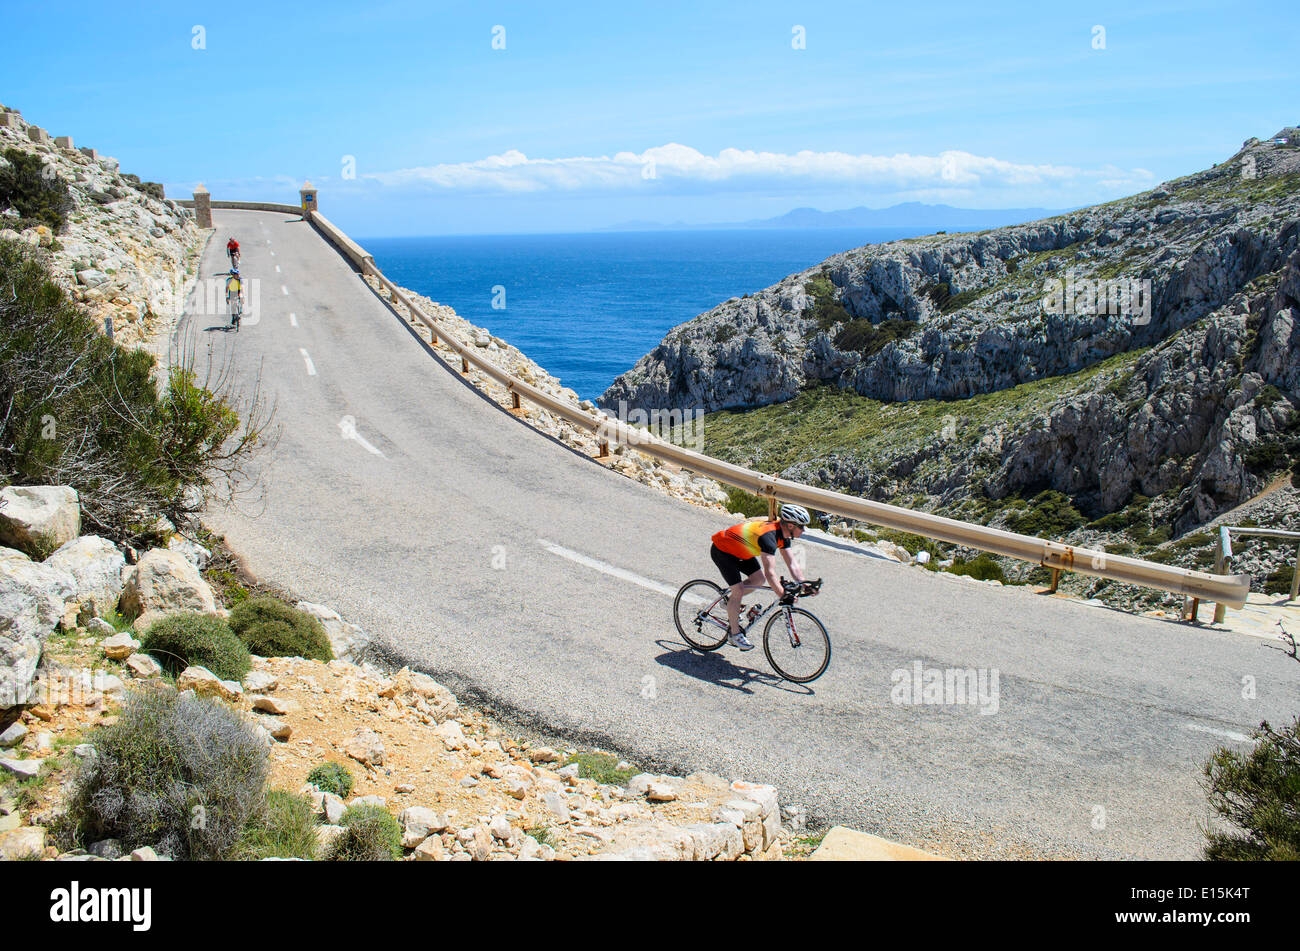 Riding bicycles on Mallorca road - Stock Image